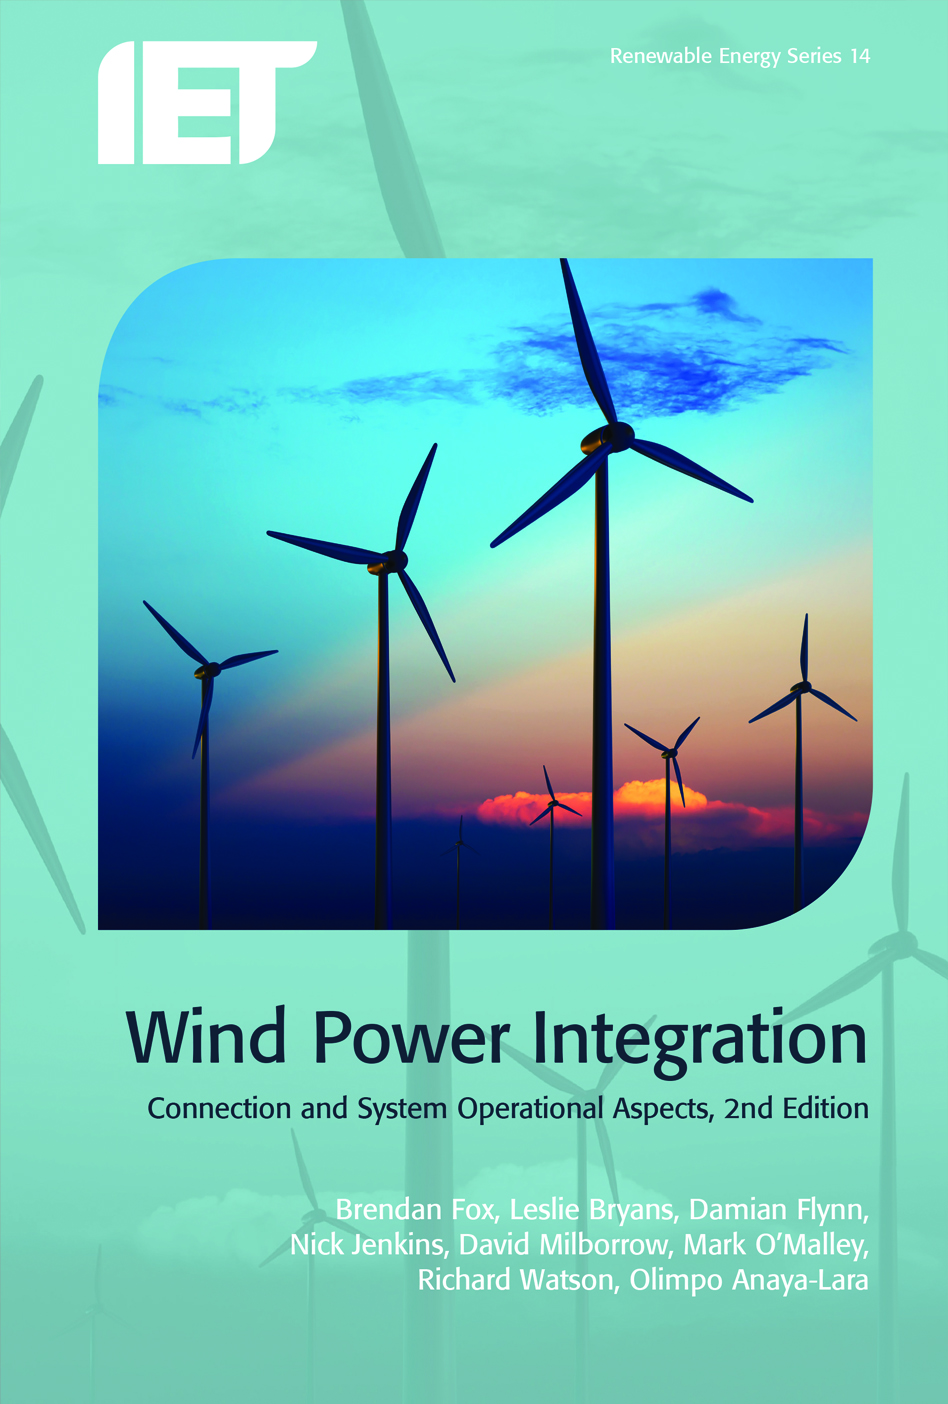 Wind Power Integration, Connection and system operational aspects, 2nd Edition